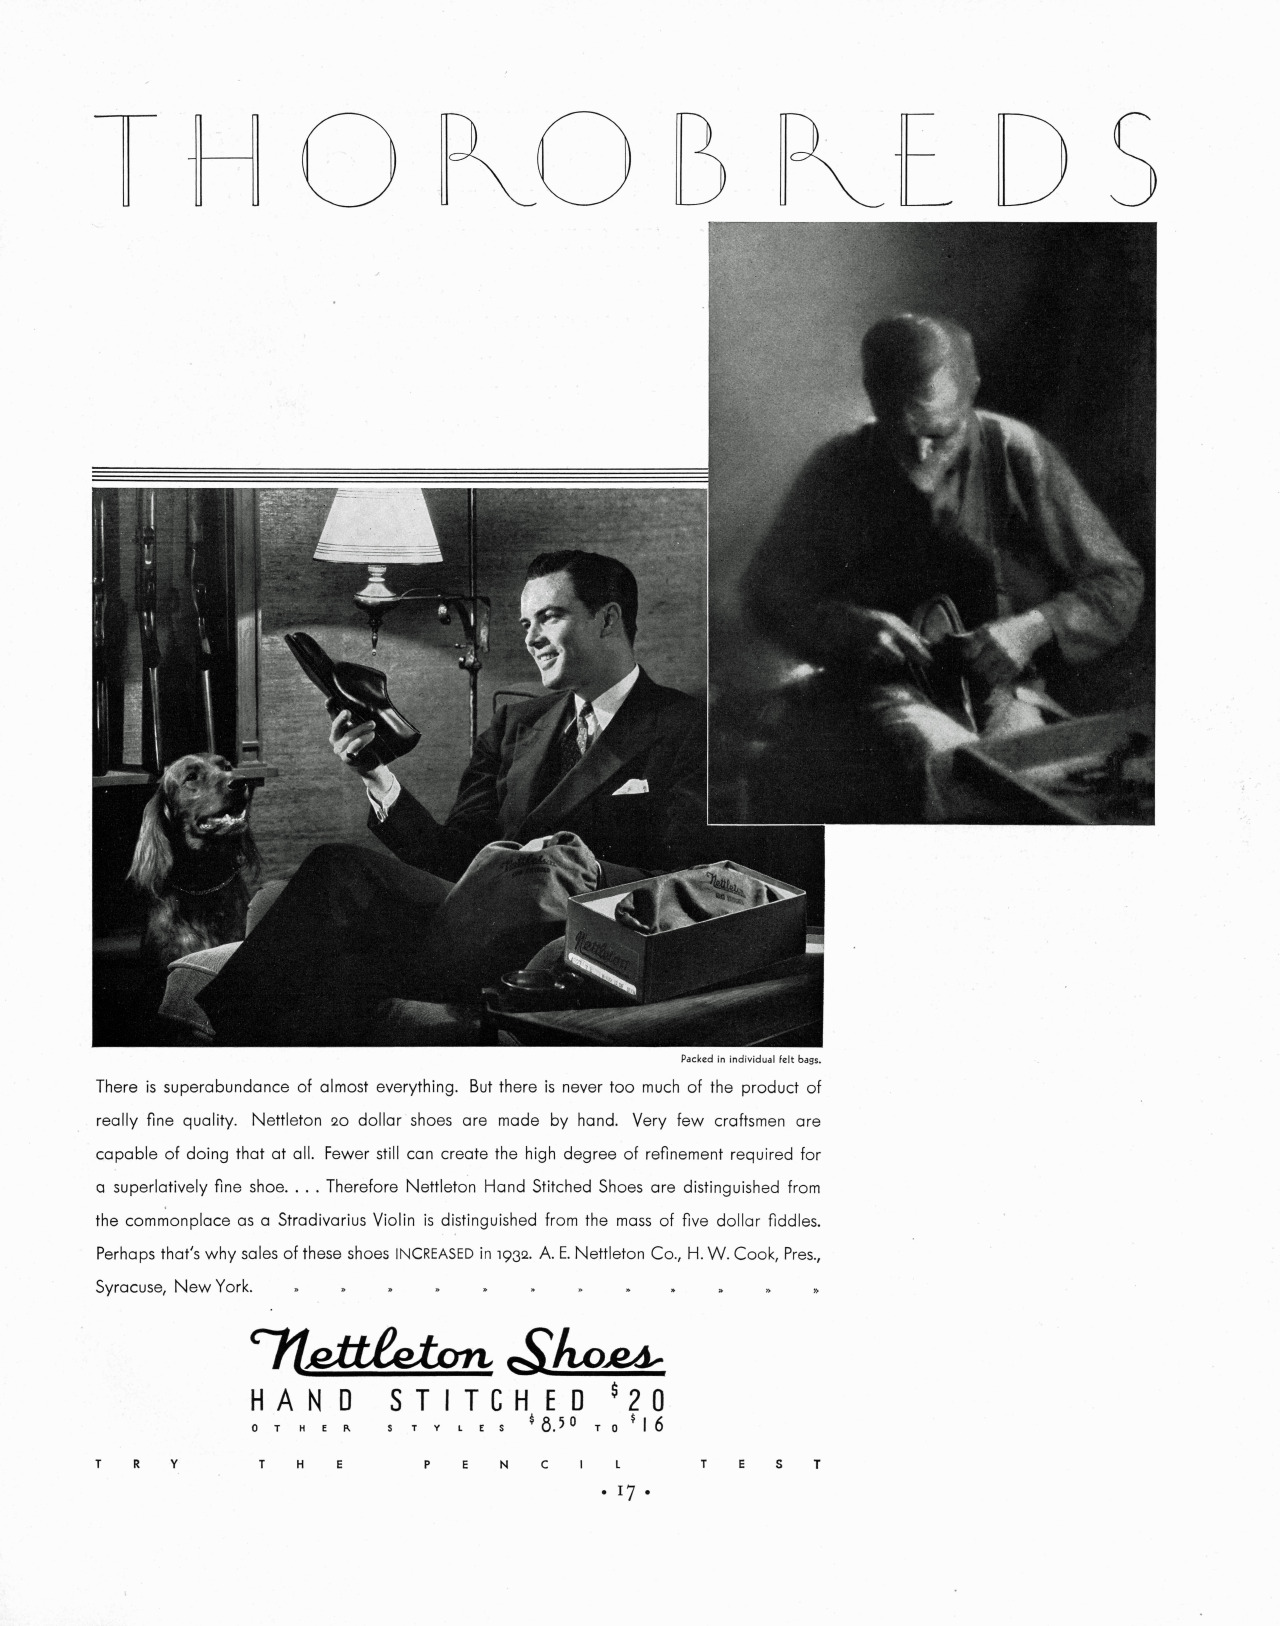 Nettleton Shoes, 1933